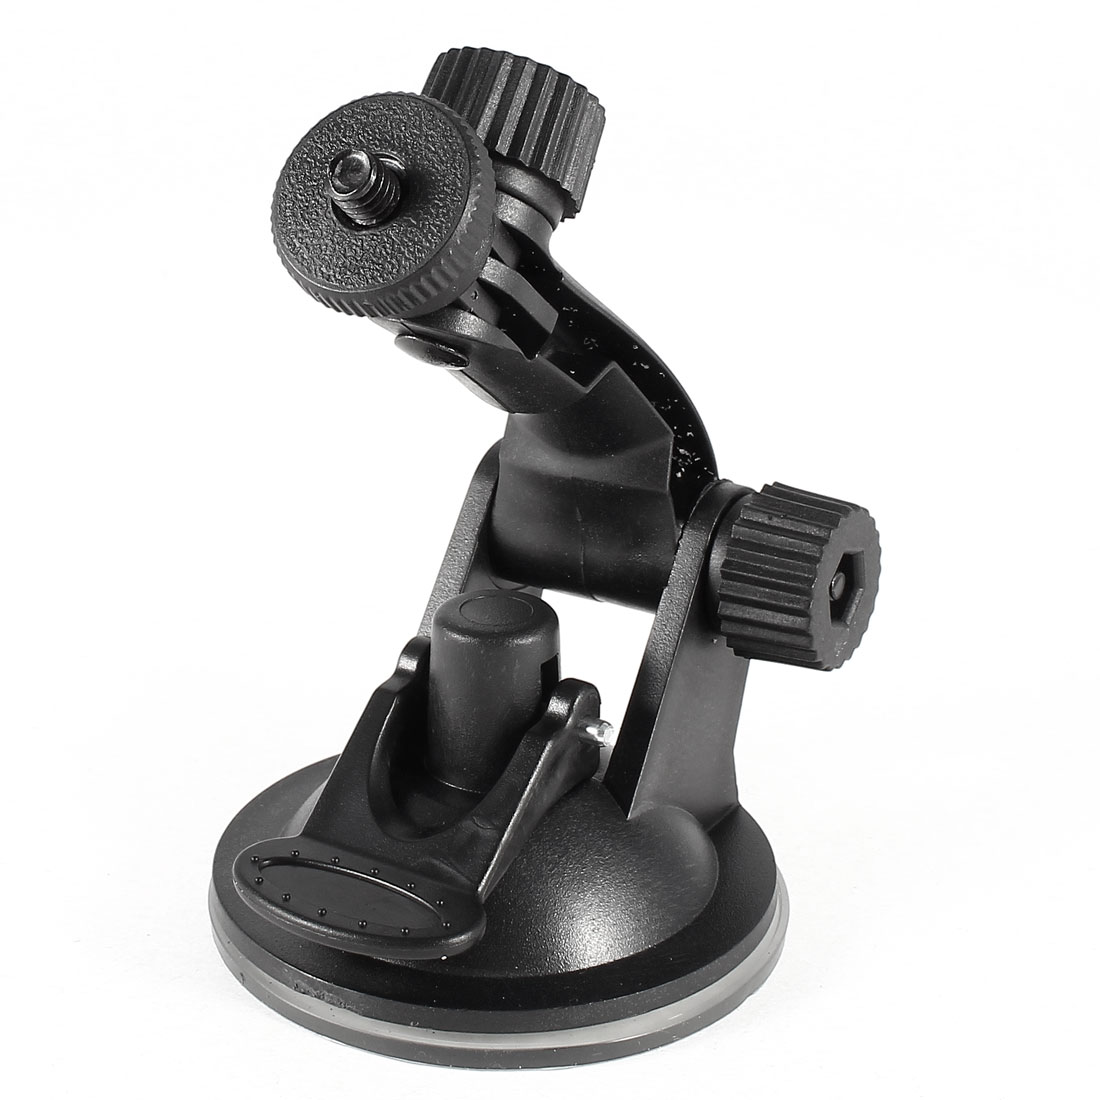 Adjustable Angle Suction Cup Car Windshield Camera Mount Bracket Black